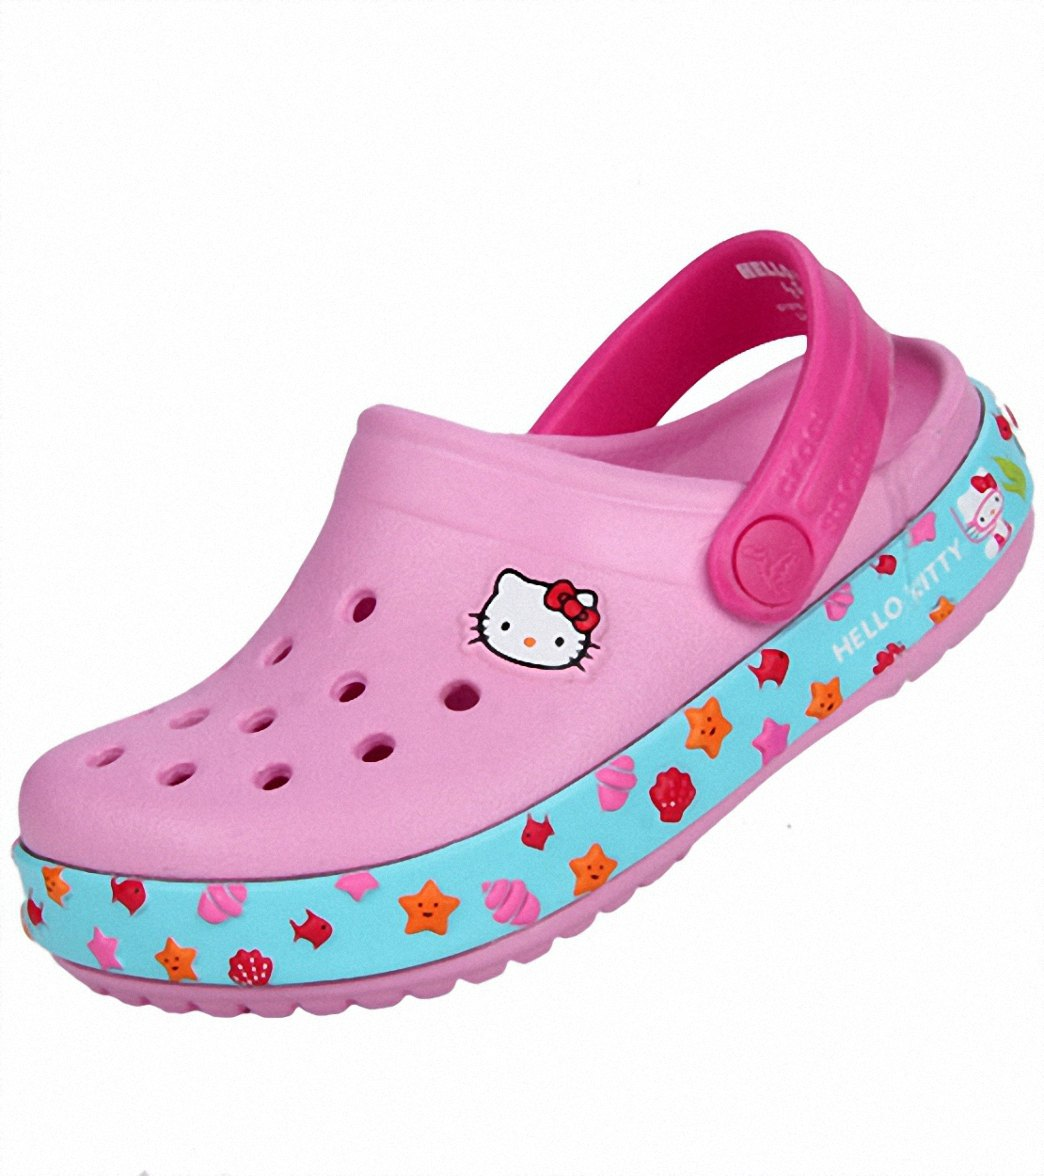 a06bfe5d39d71f Crocs Girls  Hello Kitty Clogs at SwimOutlet.com